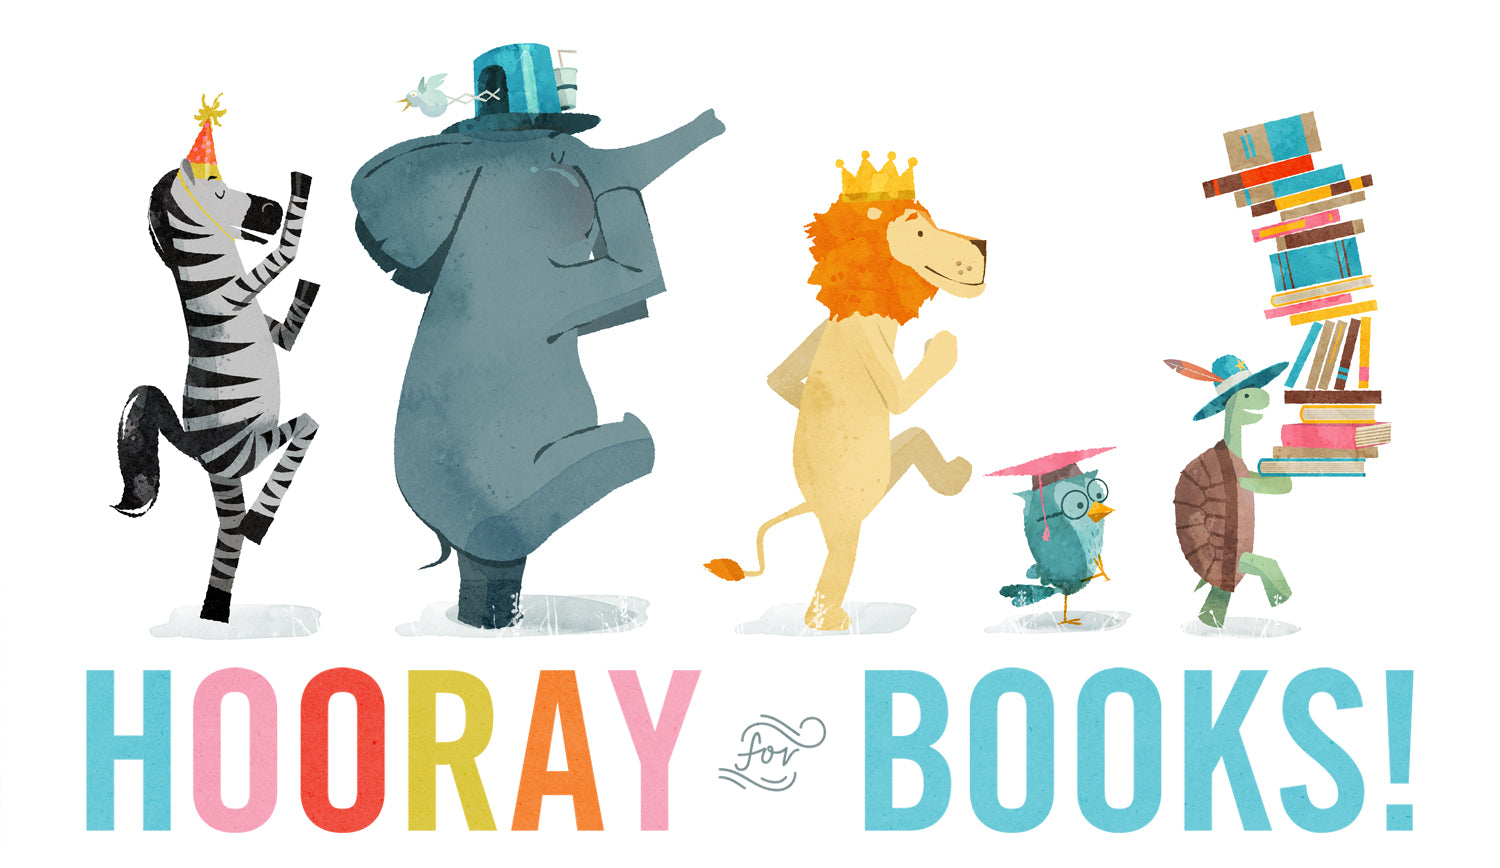 """1 lucky winner will receive a signed copy of Hooray for Books, a signed archival print of """"Hooray for Books,"""" 1 Lollacup, and 1Lollaland Mealtime Set."""